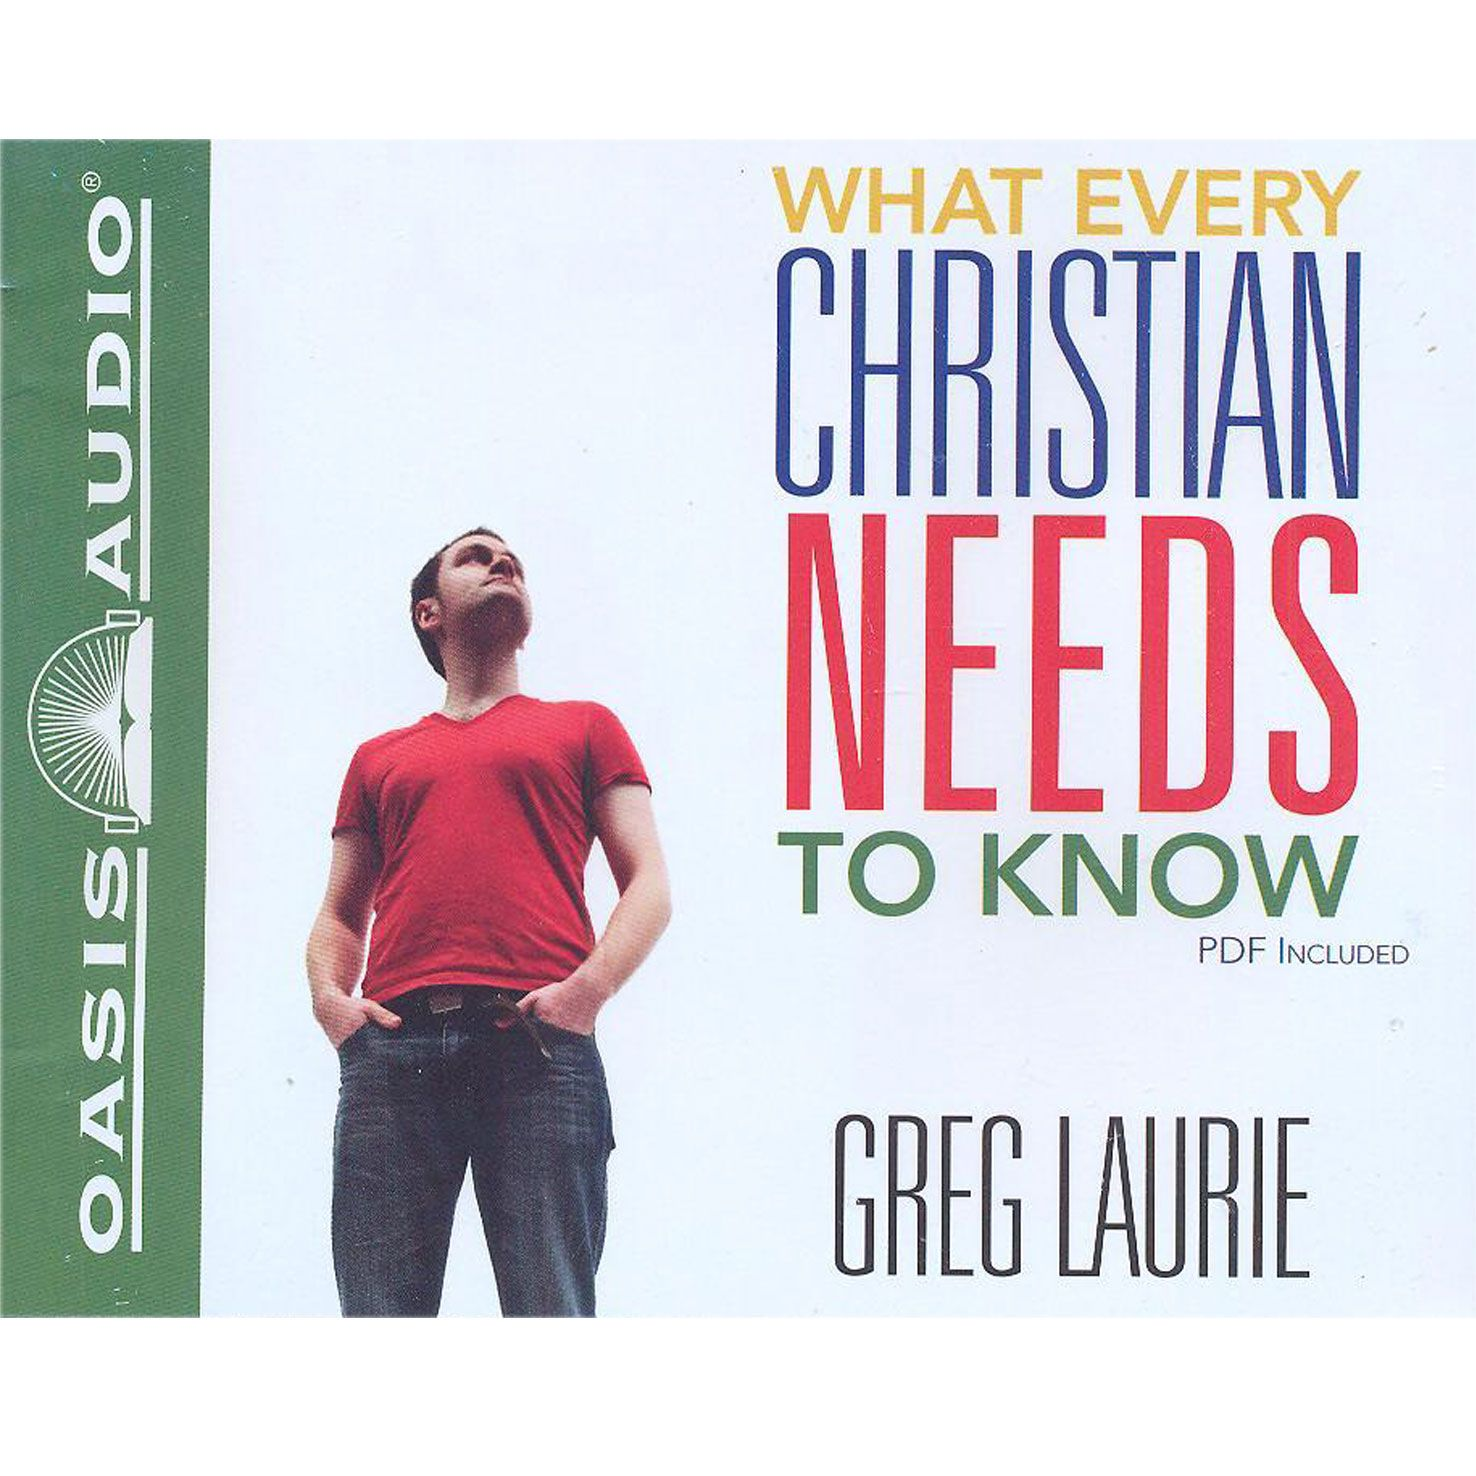 Audio Book - What Every Christian Needs to Know